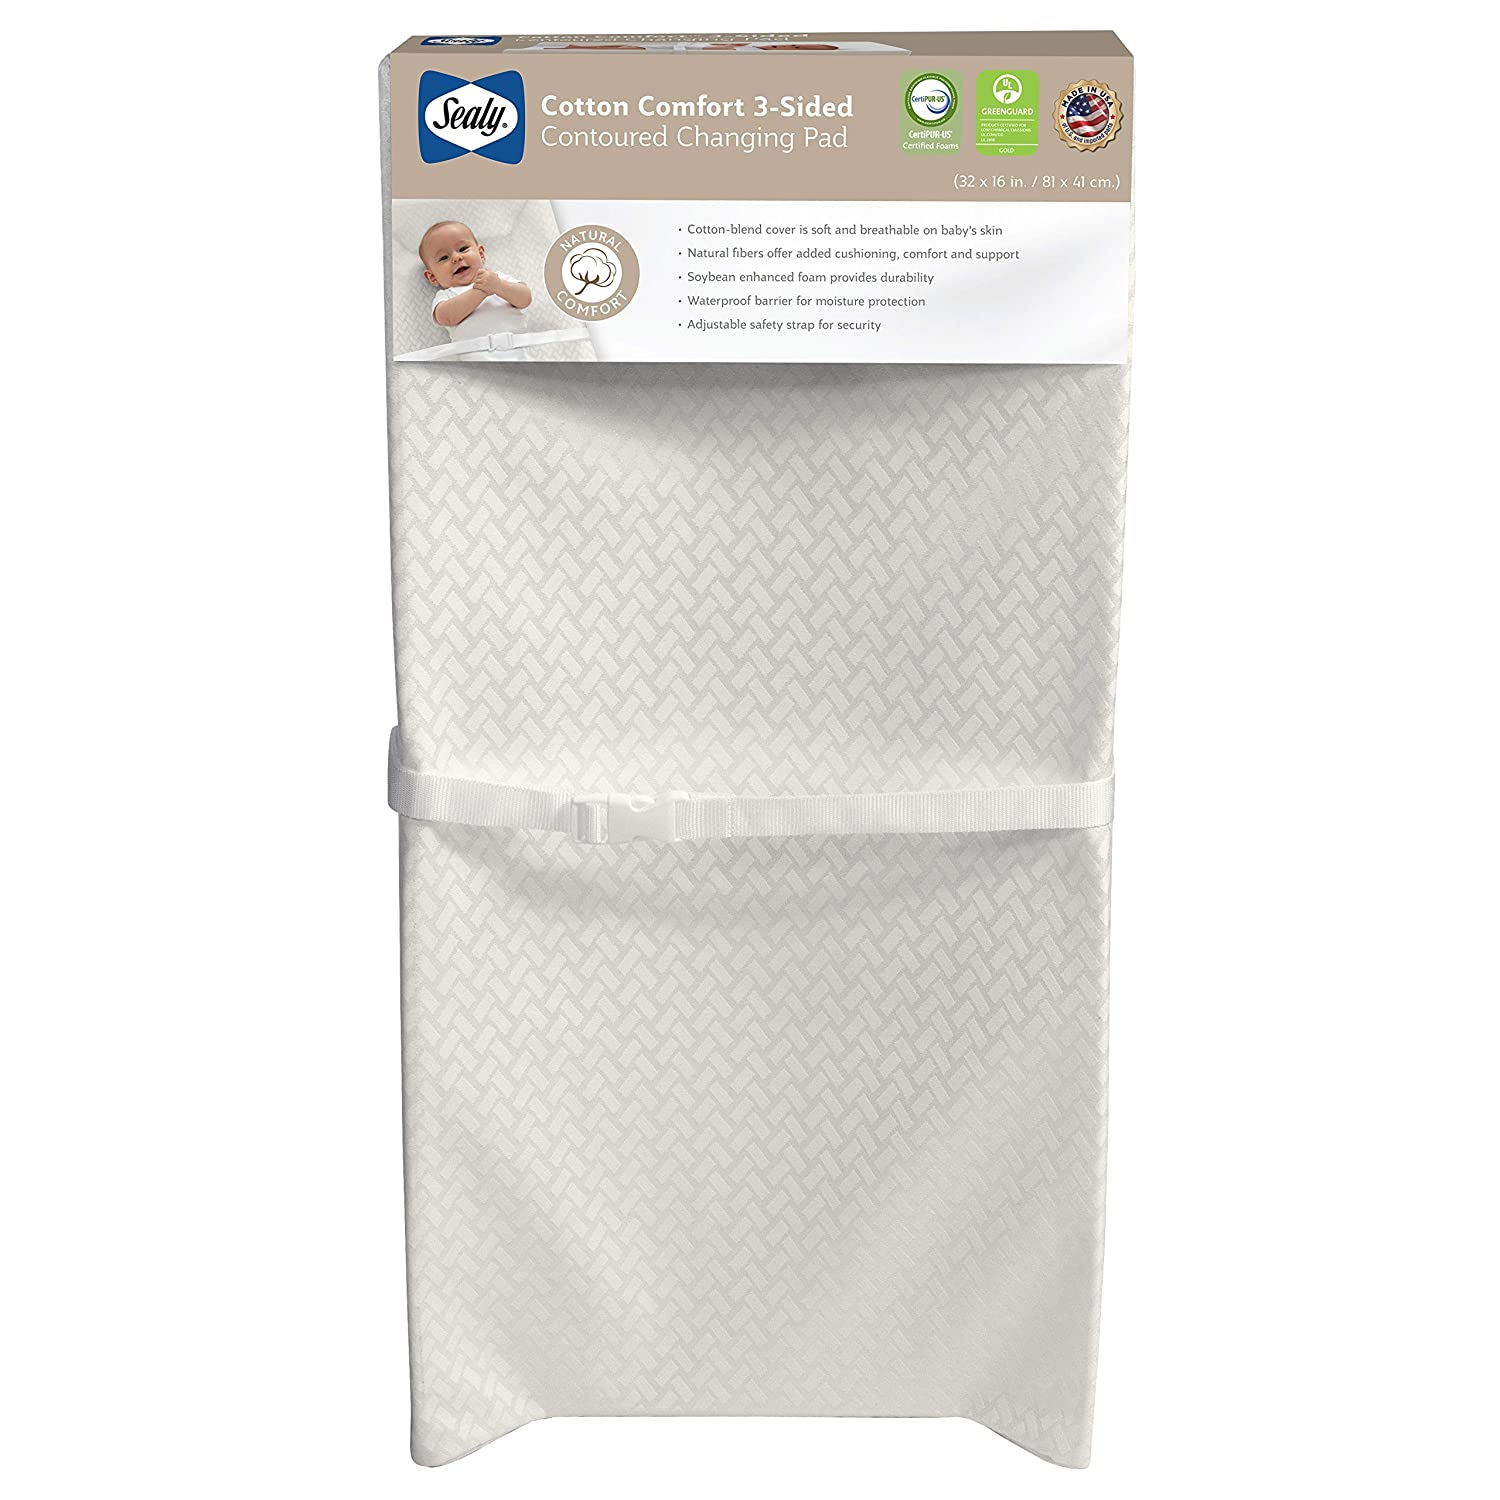 Sealy Cotton Comfort 3-Sided Contoured Changing Pad